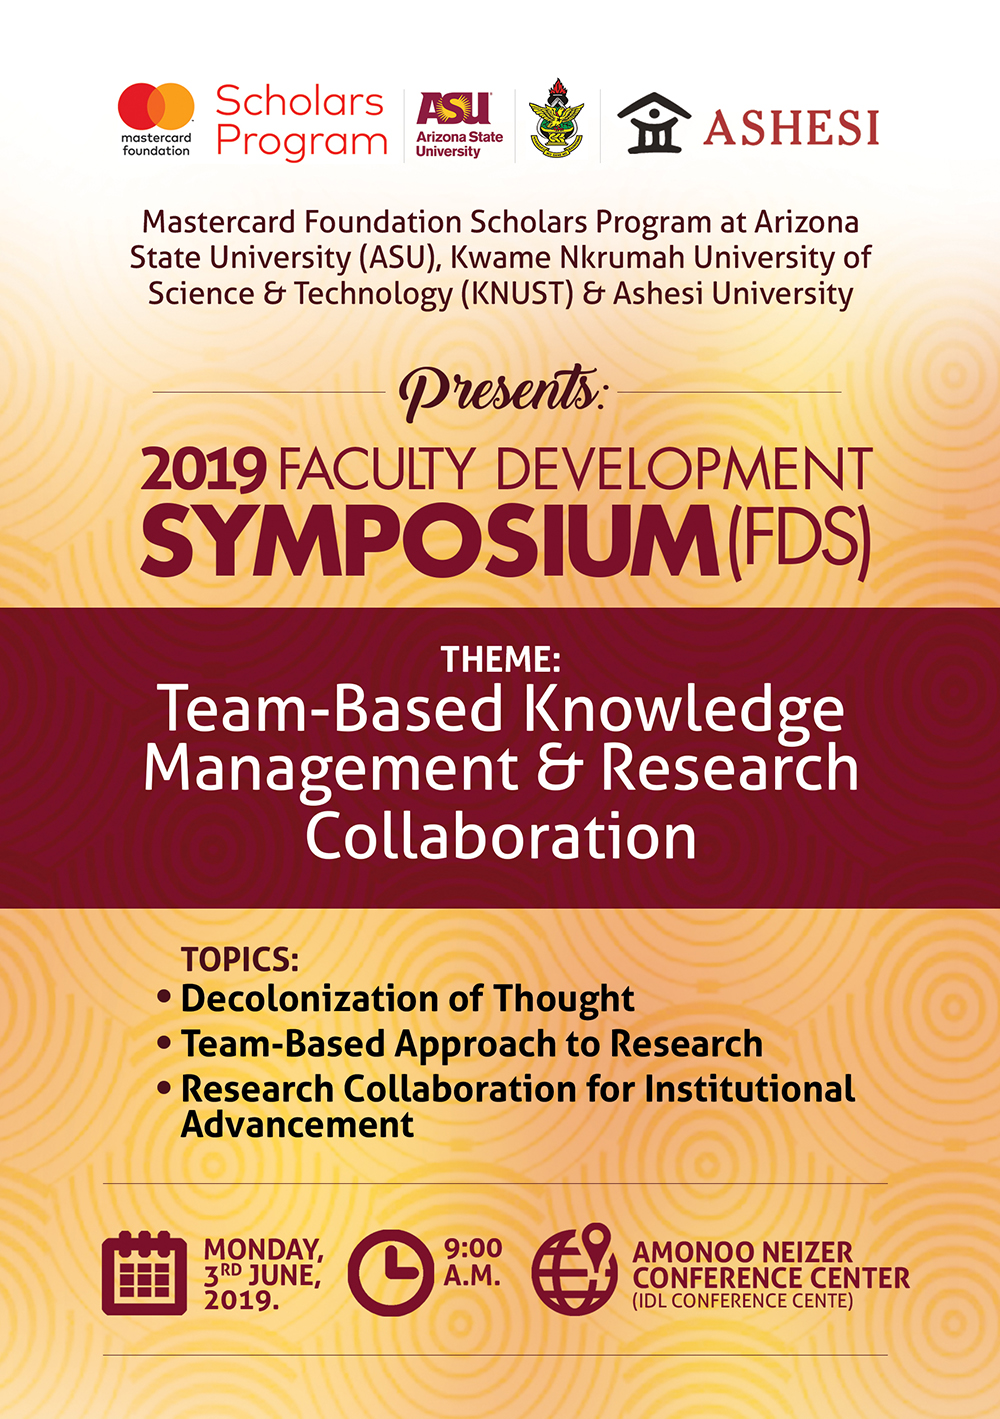 2019 Faculty Development Symposium (FDS)